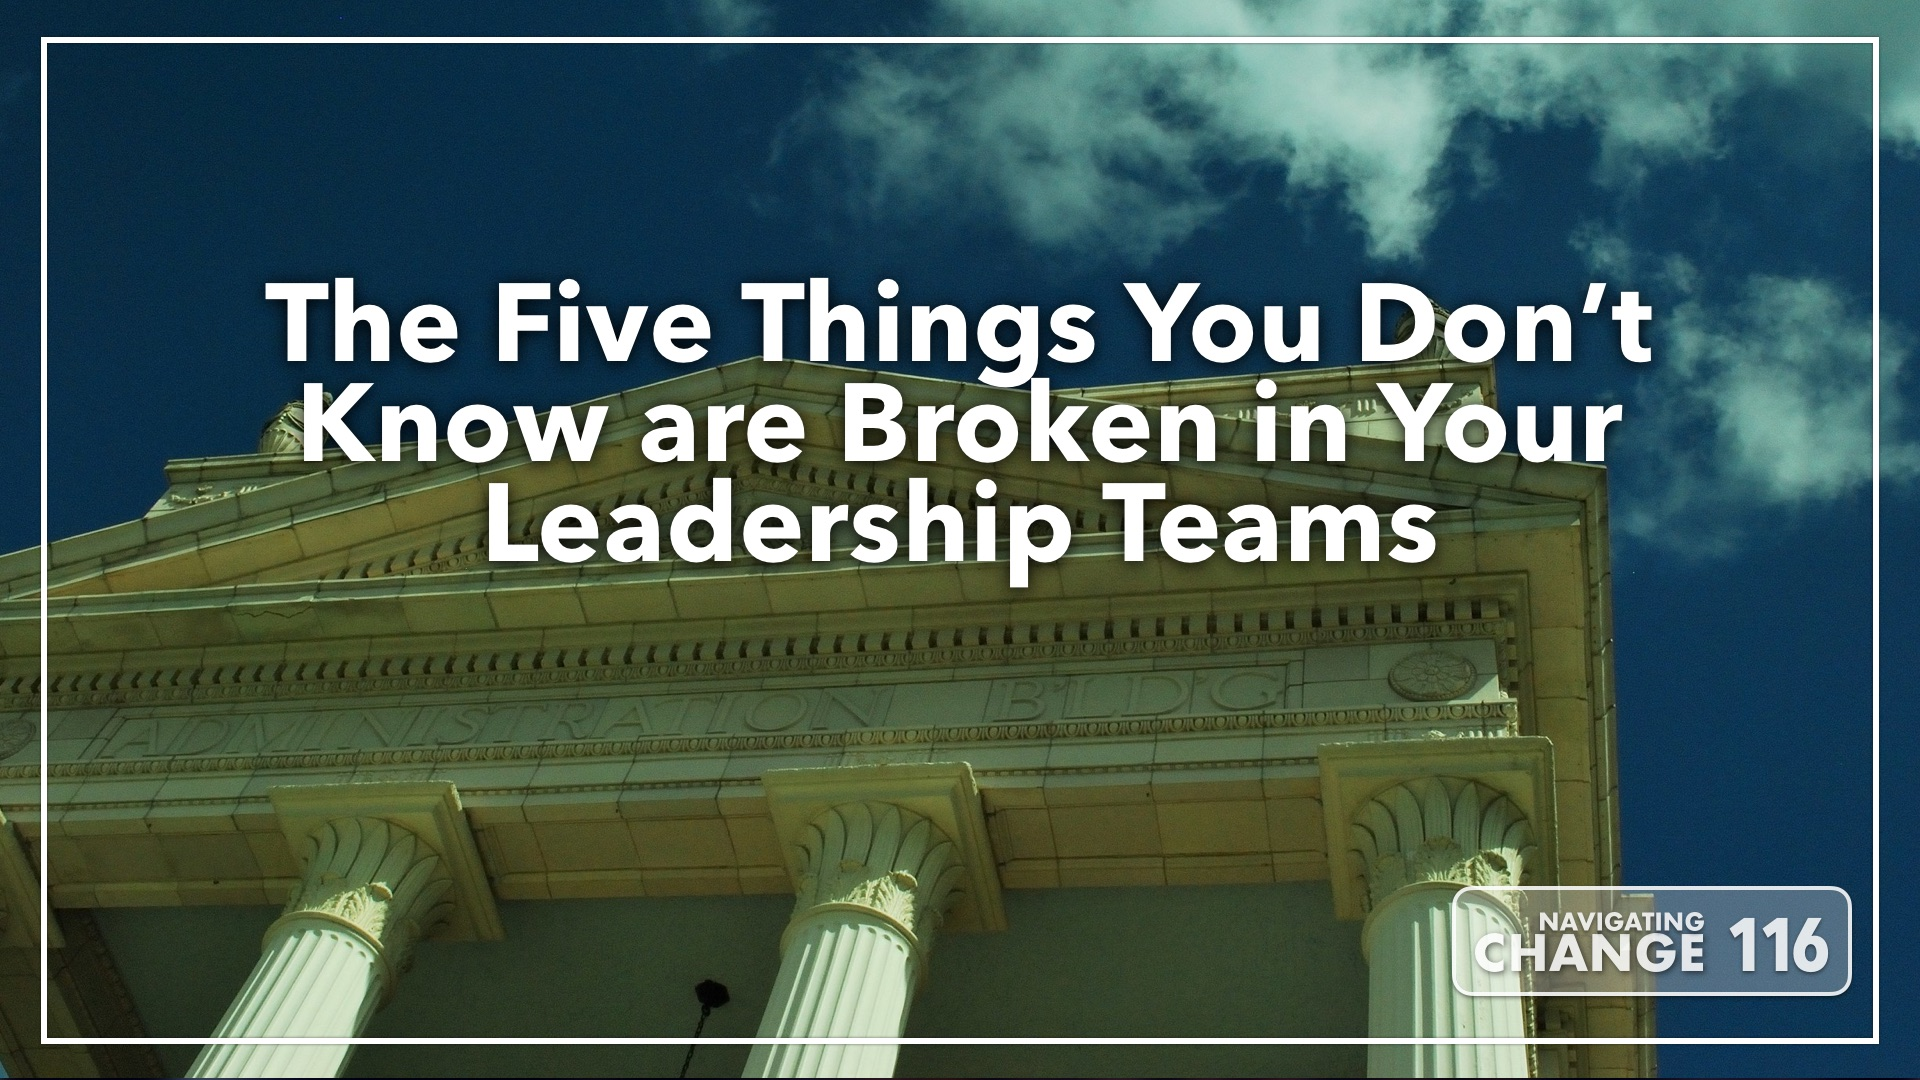 Listen to Broken Leadership Teams on Navigating Change The Education Podcast